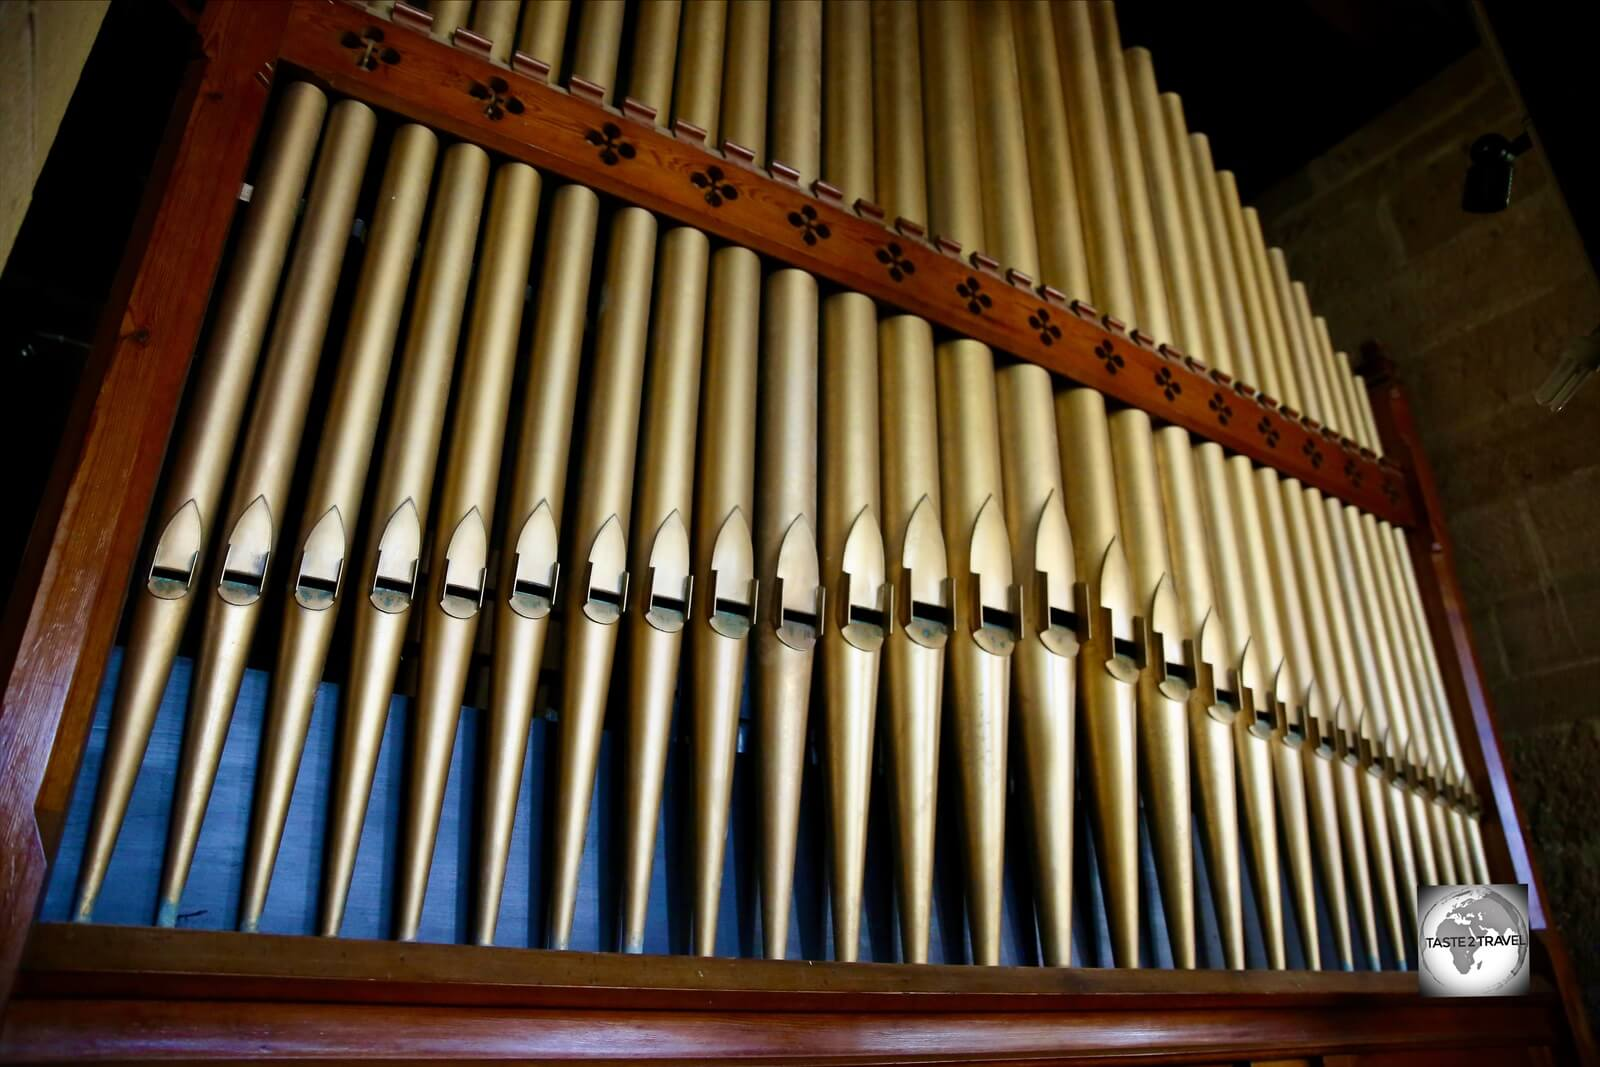 The 350 Willis pipe organ was built by Henry Willis & Sons of London in 1880 and shipped to the island in pieces.